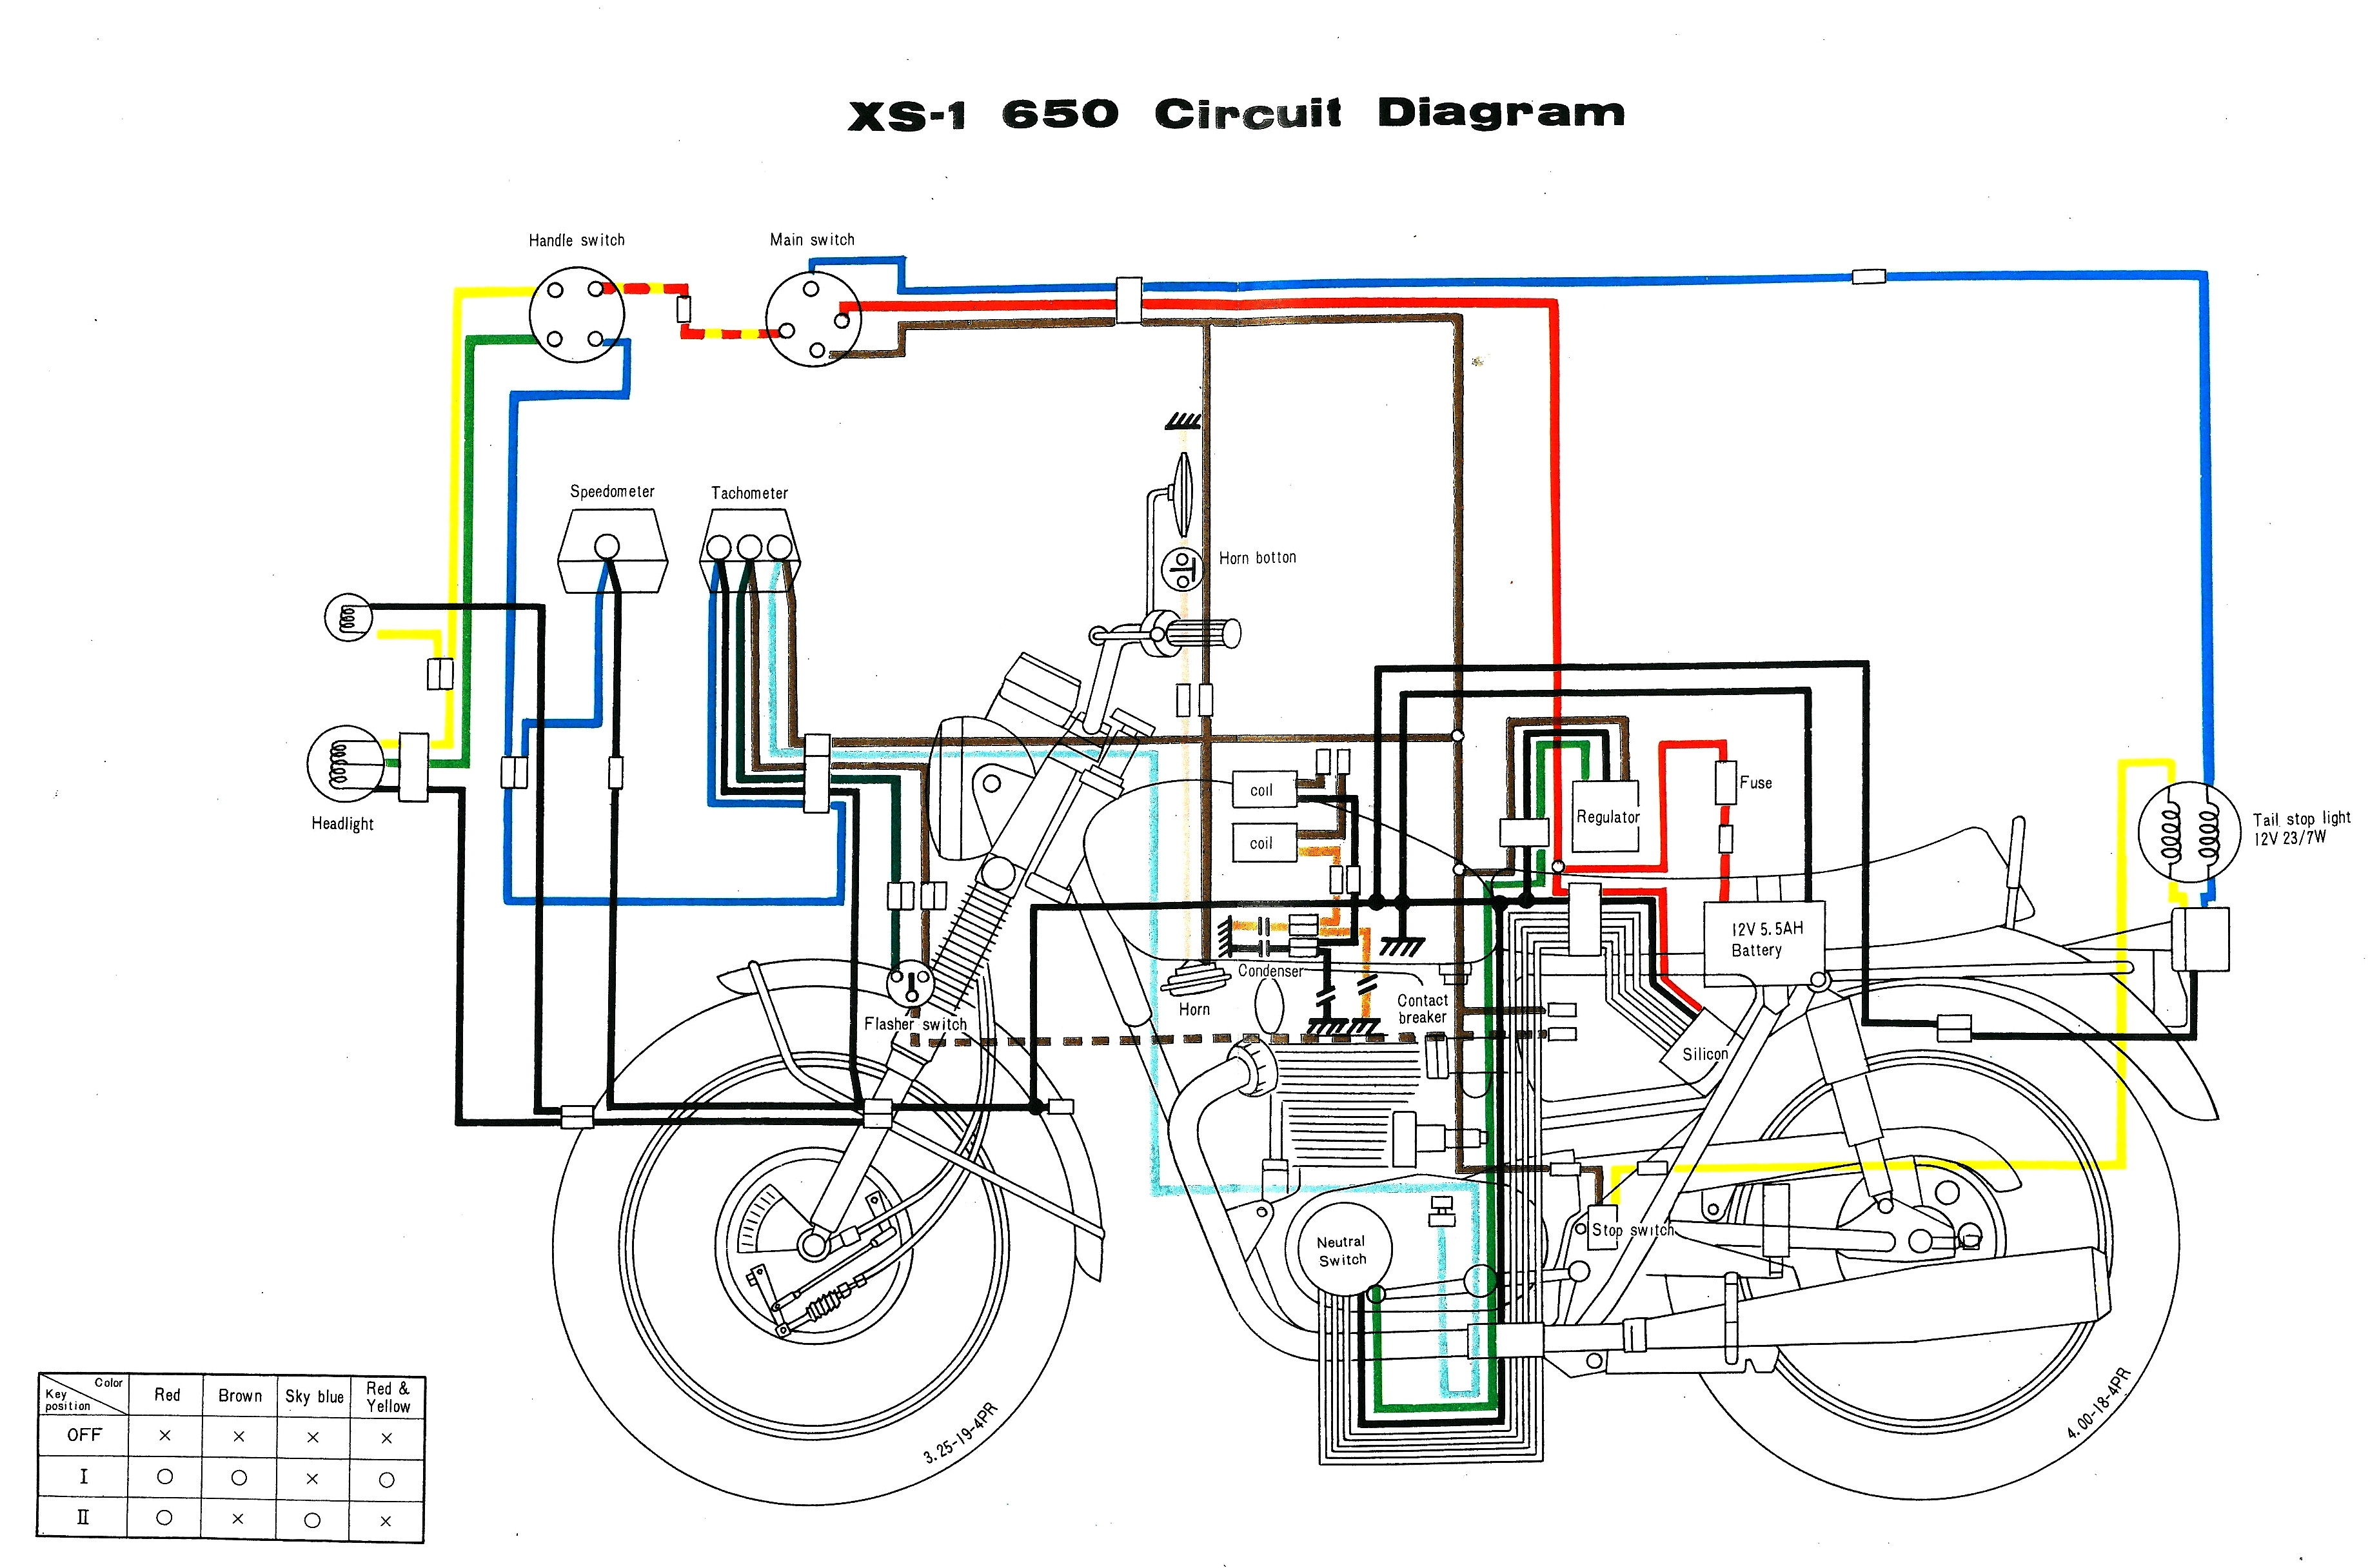 yamaha rd 350 wiring diagram diagrams acupressure to induce labor color best library 1975 schema rh 43 valdeig media de